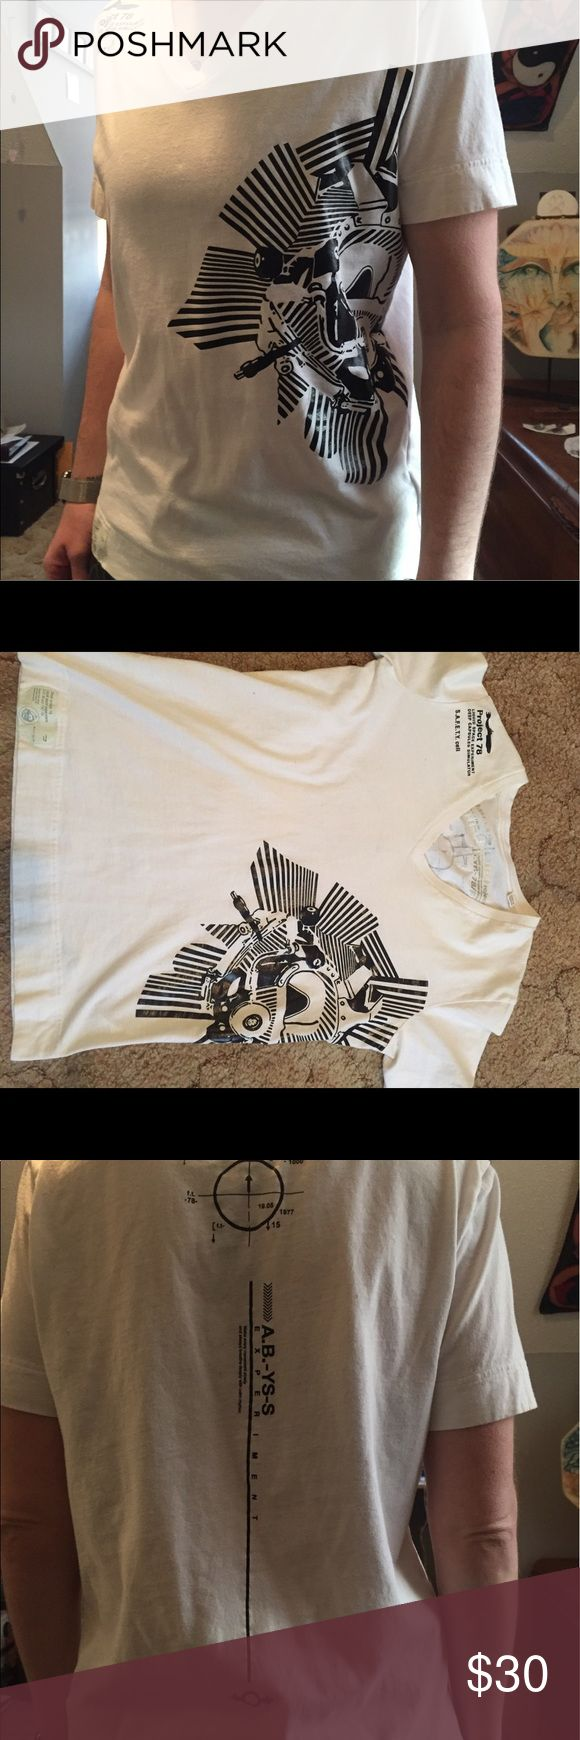 Diesel t shirt Diesel t shirt great condition slightly used no stains or tears Diesel Shirts Tees - Short Sleeve